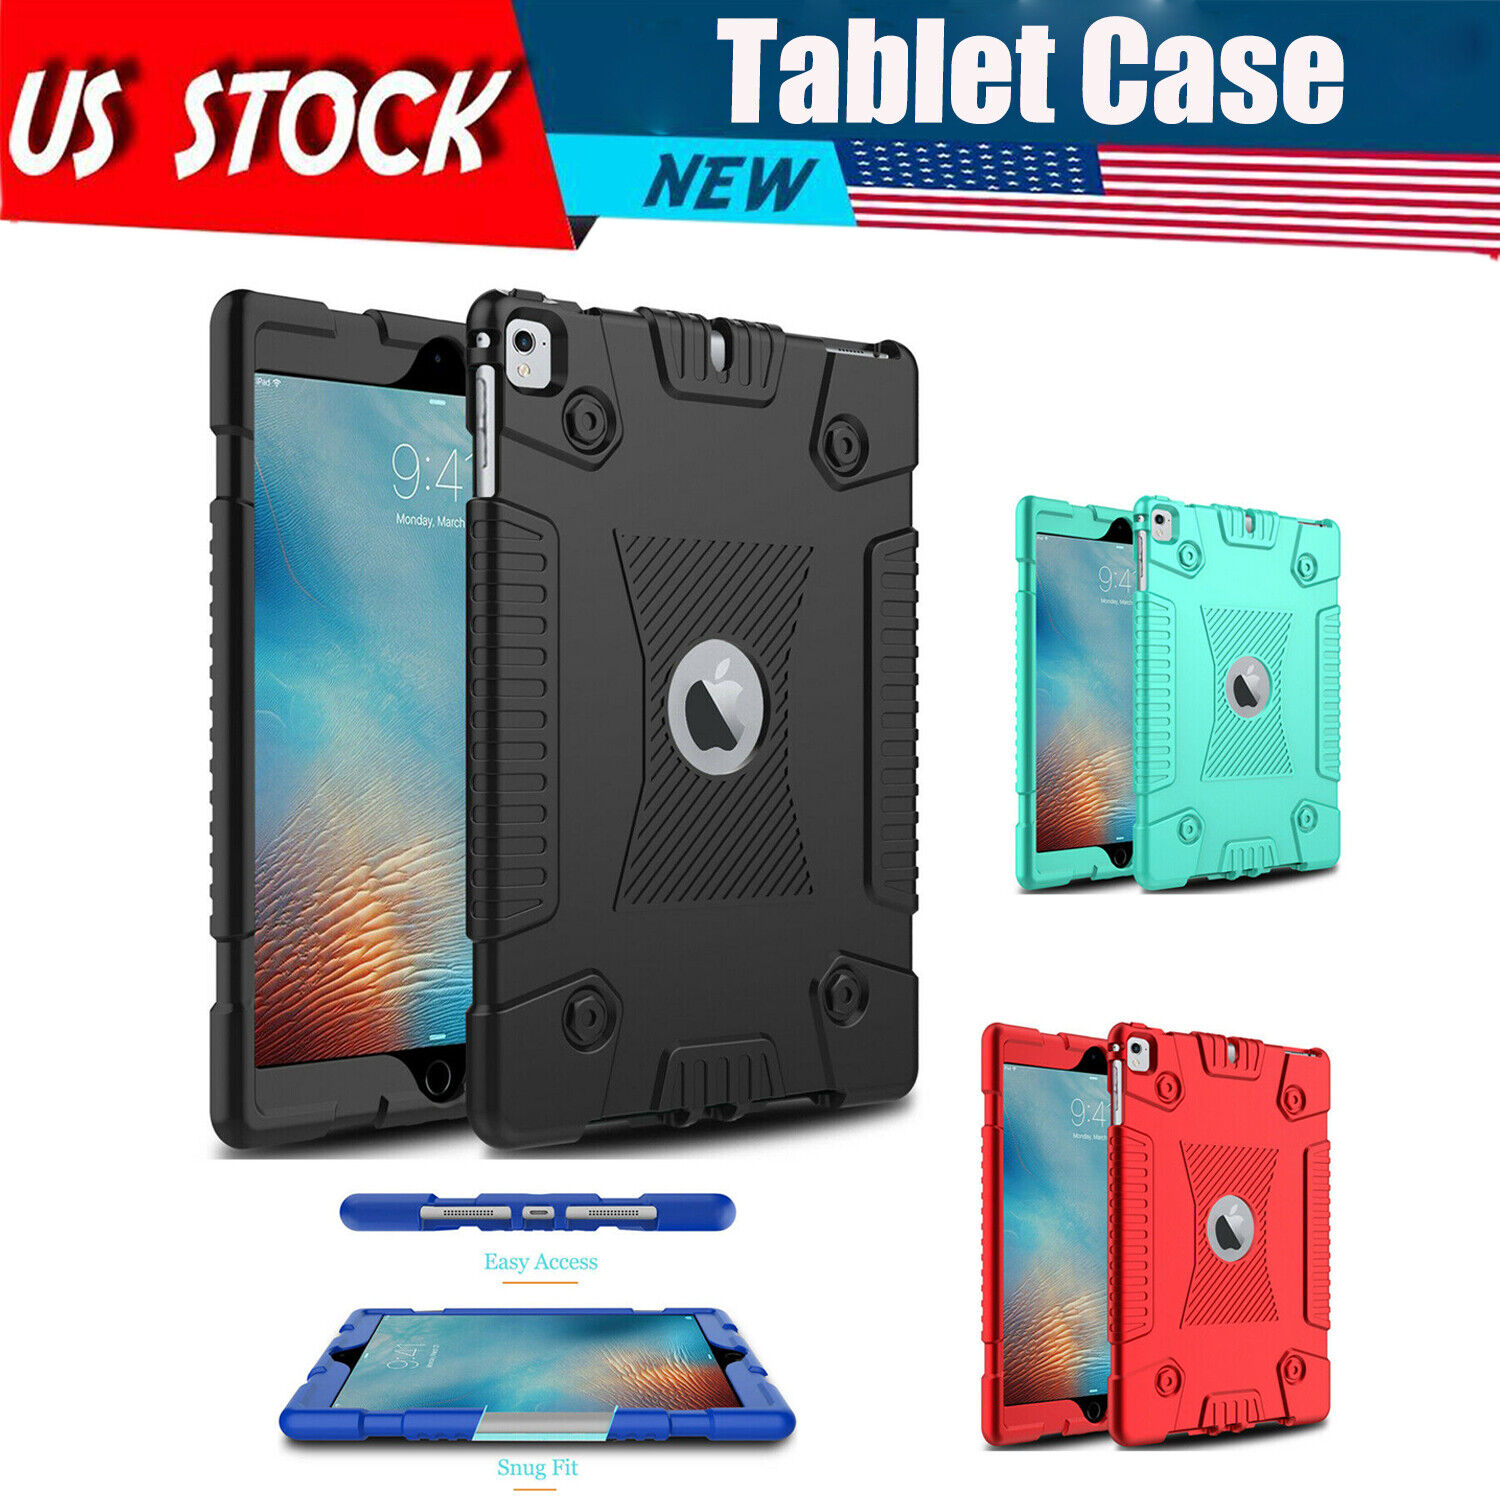 For  Air 2 / iPad 6/Air /iPad 5/Pro 9.7in/6th Gen Silicone Case Shockproof Cover Cases, Covers, Keyboard Folios